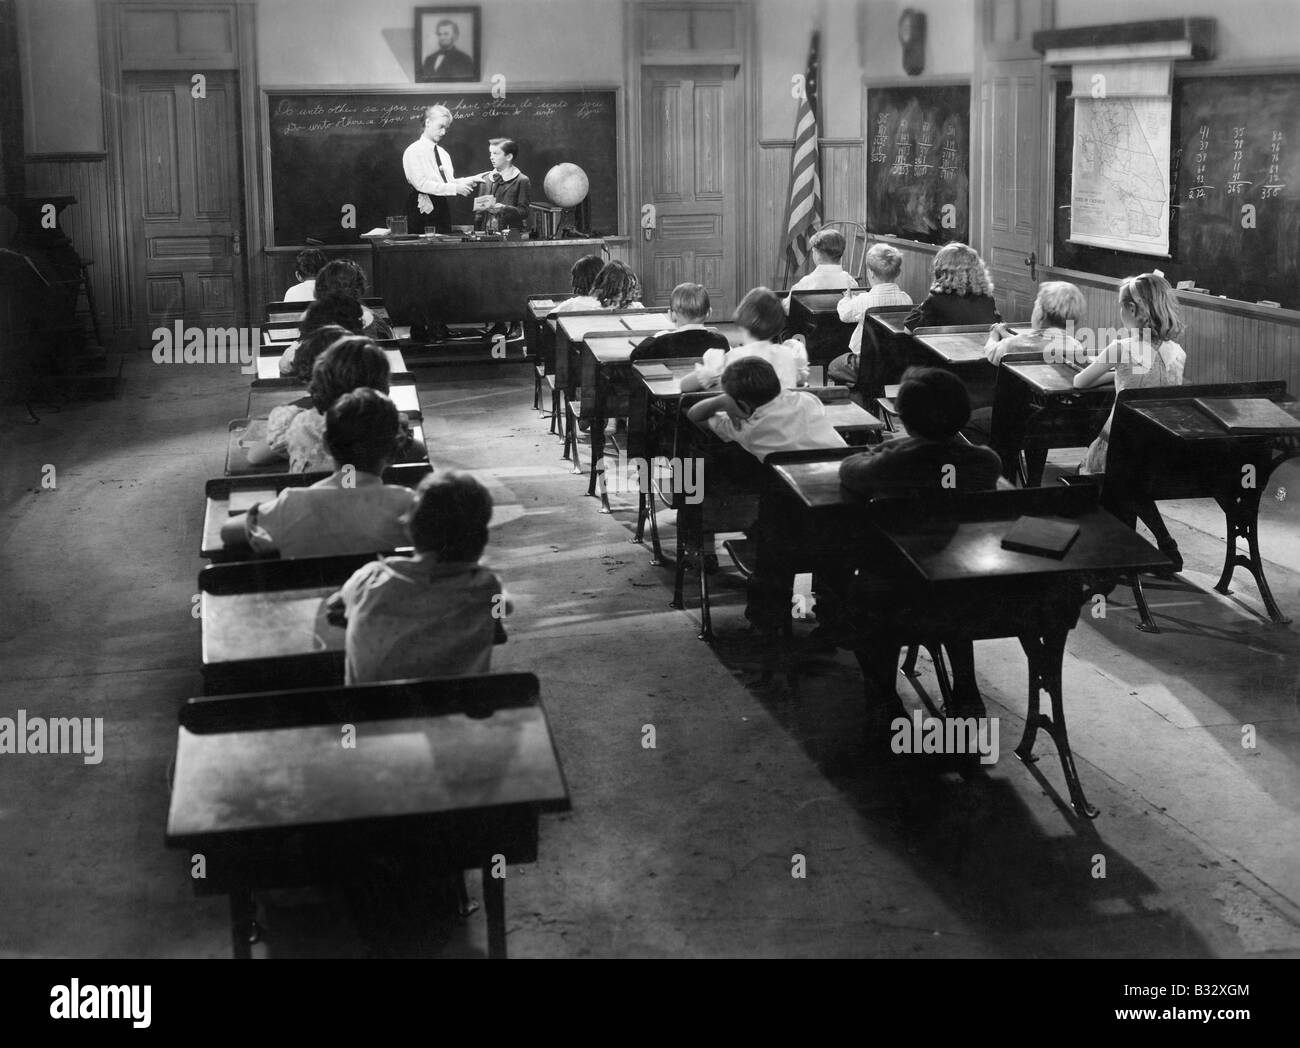 Children in a class room with a teacher - Stock Image